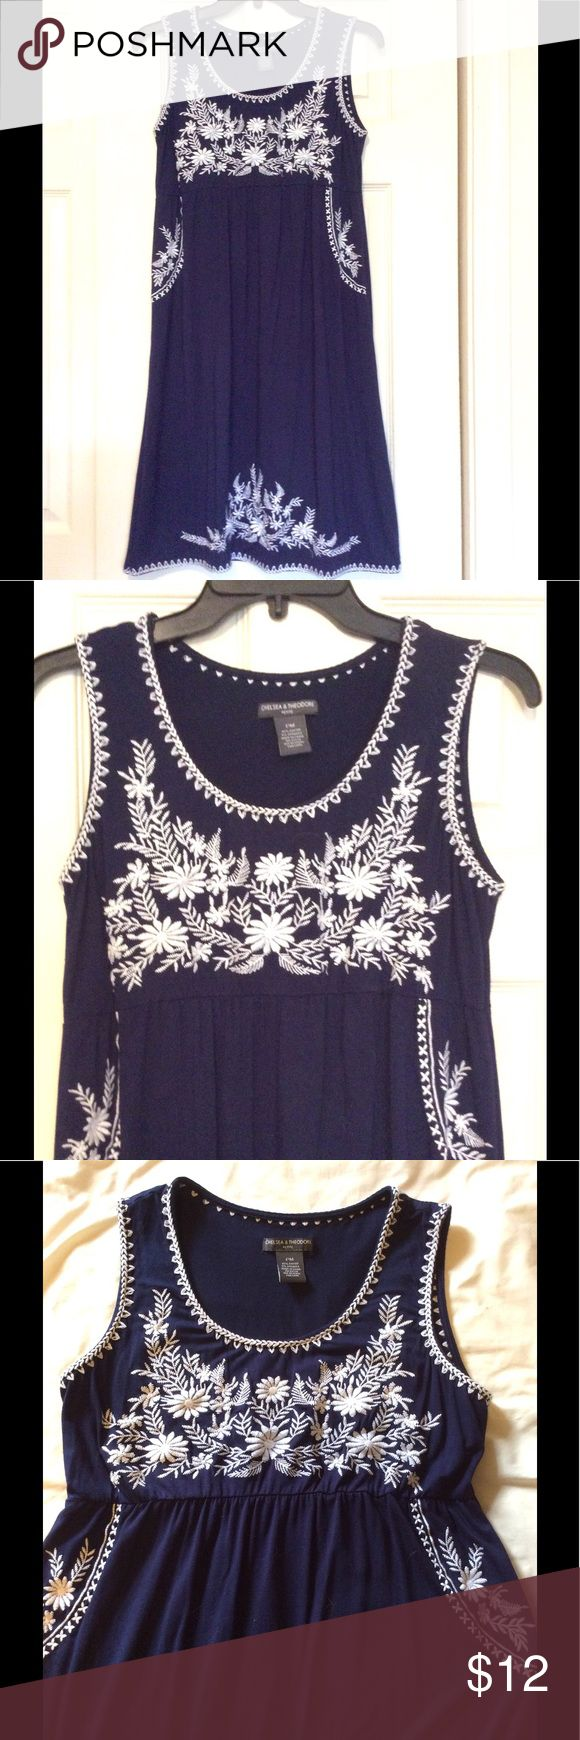 """Sleeveless Navy Cotton Knit Dress White Embroidery Chelsea & Theodore, Size Petite Medium, Sleeveless Navy Cotton Knit Dress White Mexican-style Embroidery, elasticized empire Waist with soft gather front and back, Embroidered hem, loose fitting. Great Spring/Summer dress for barbecues & the beach! Measures 13"""" across shoulders, 17"""" armpit to armpit, 35"""" long. BUNDLE and SAVE Chelsea & Theodore Dresses"""